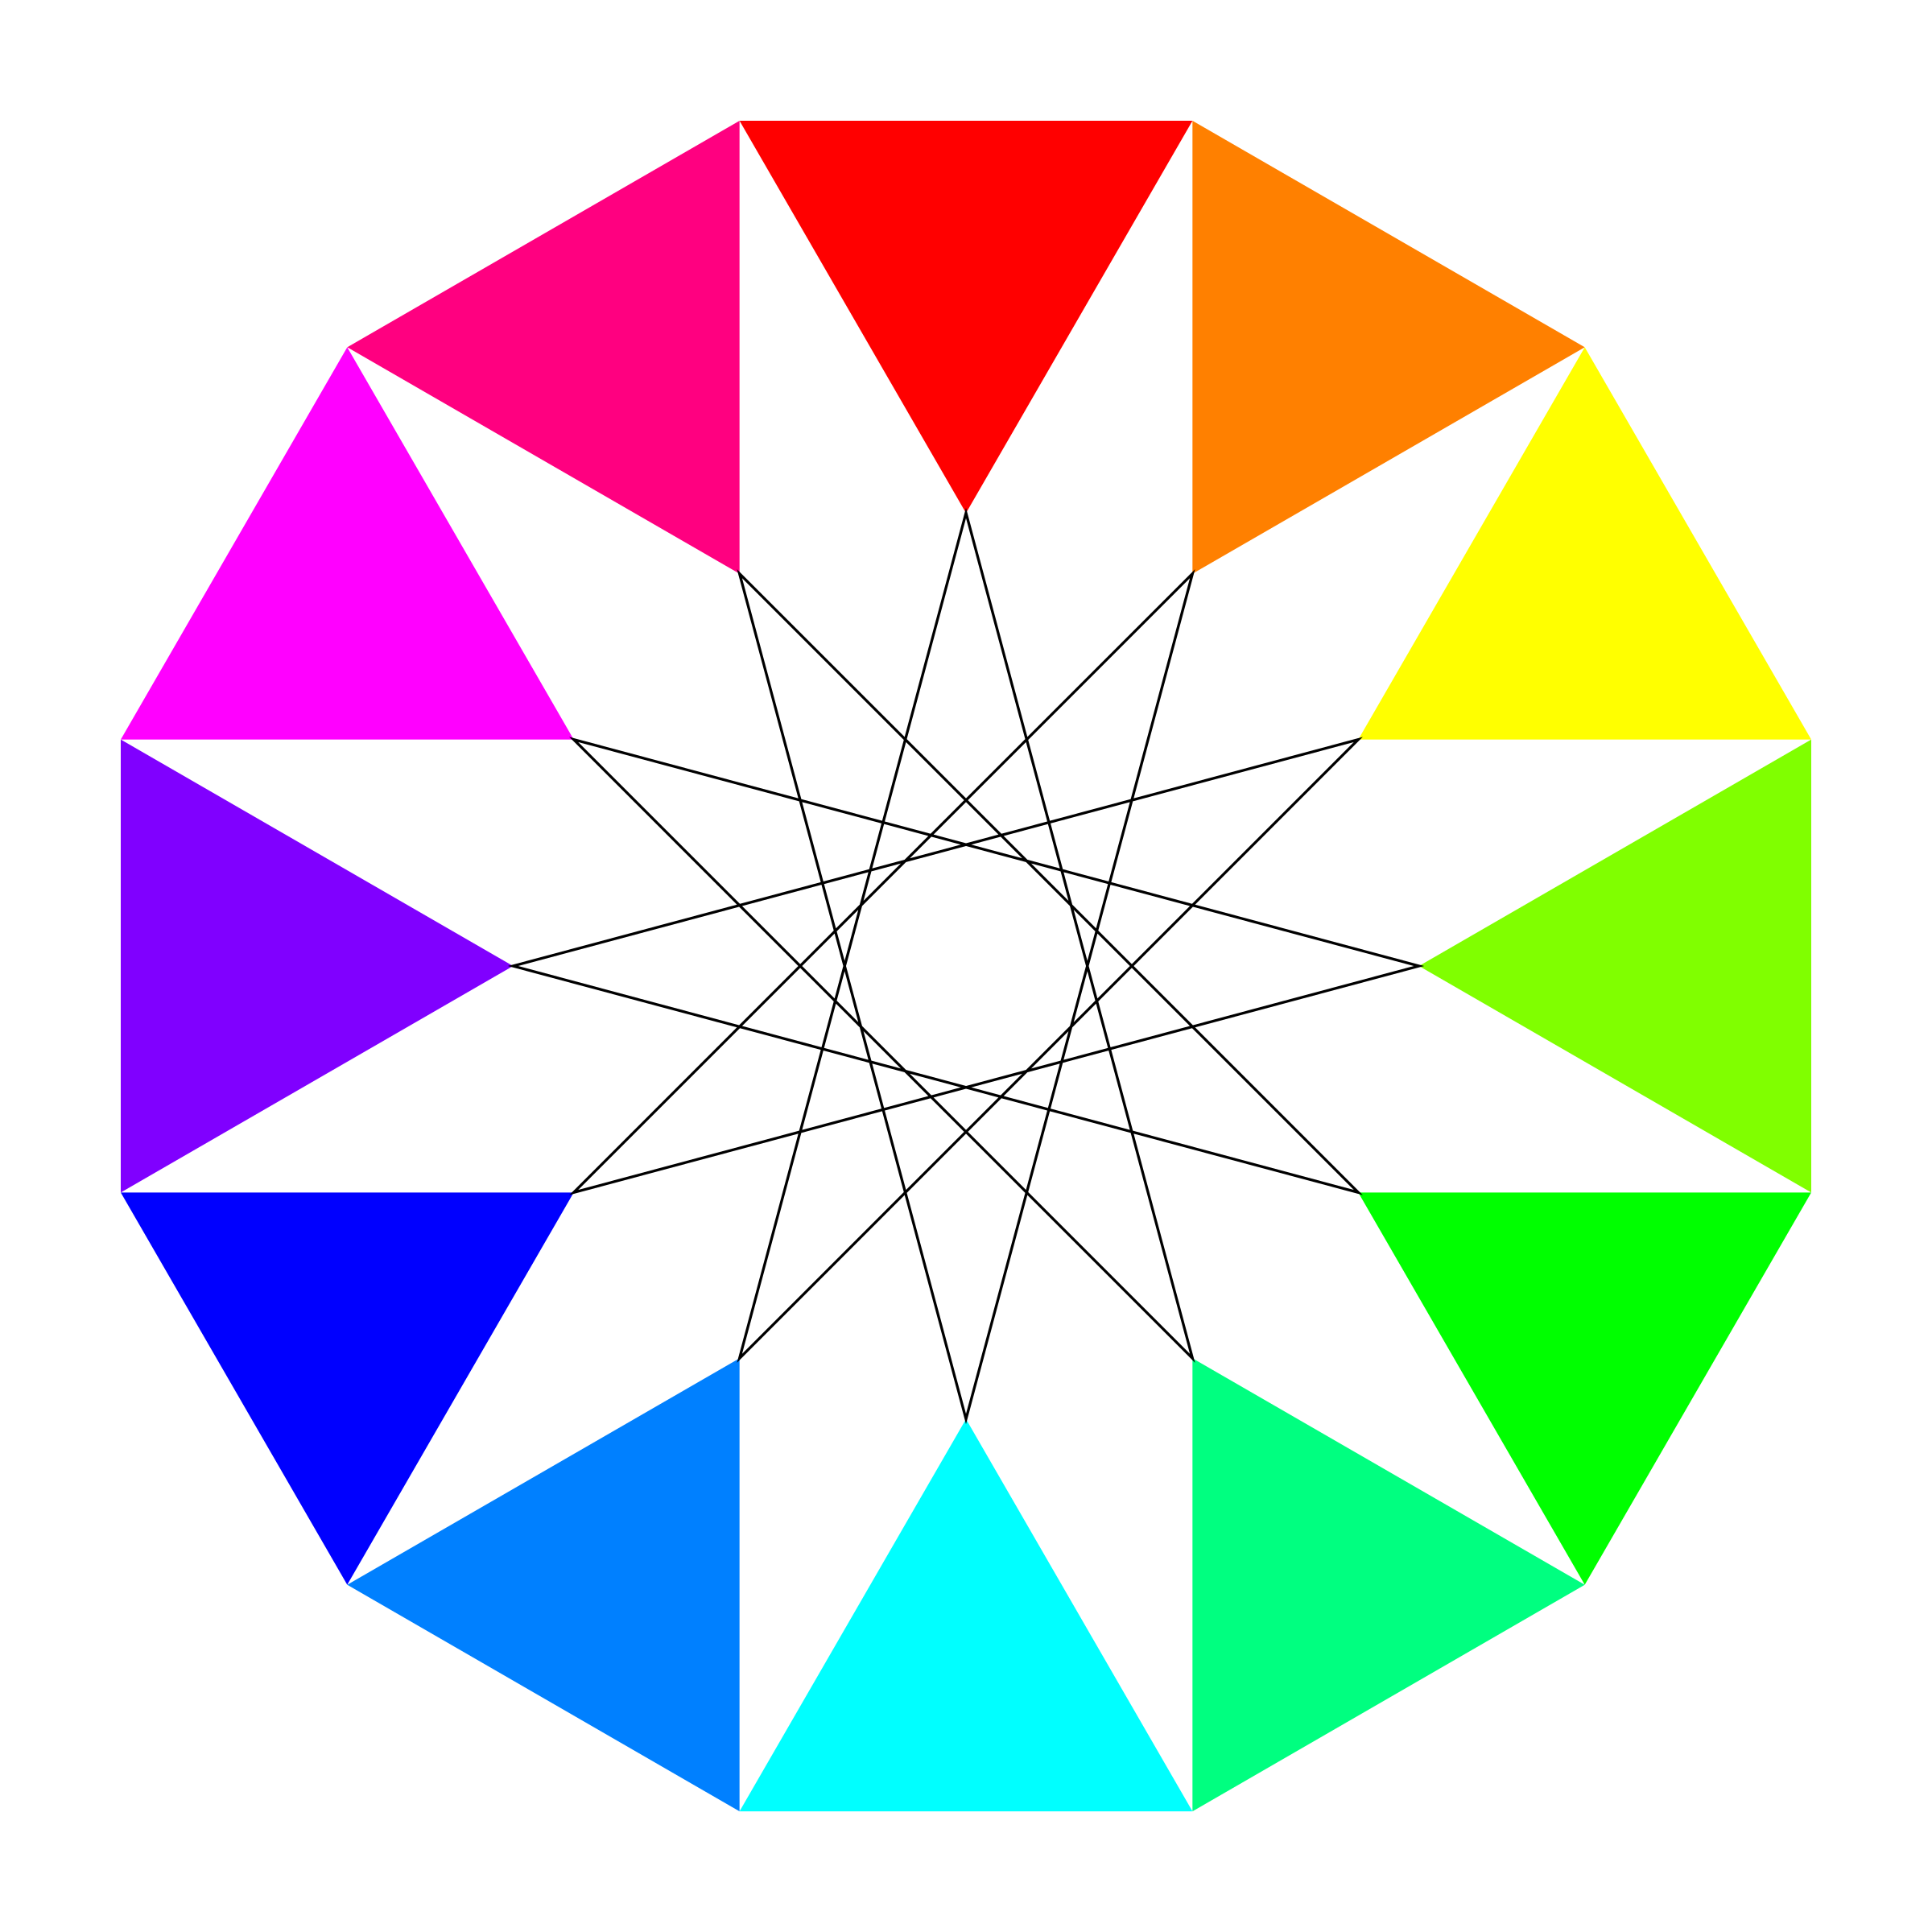 rainbow dodecagon and black dodecagram by 10binary